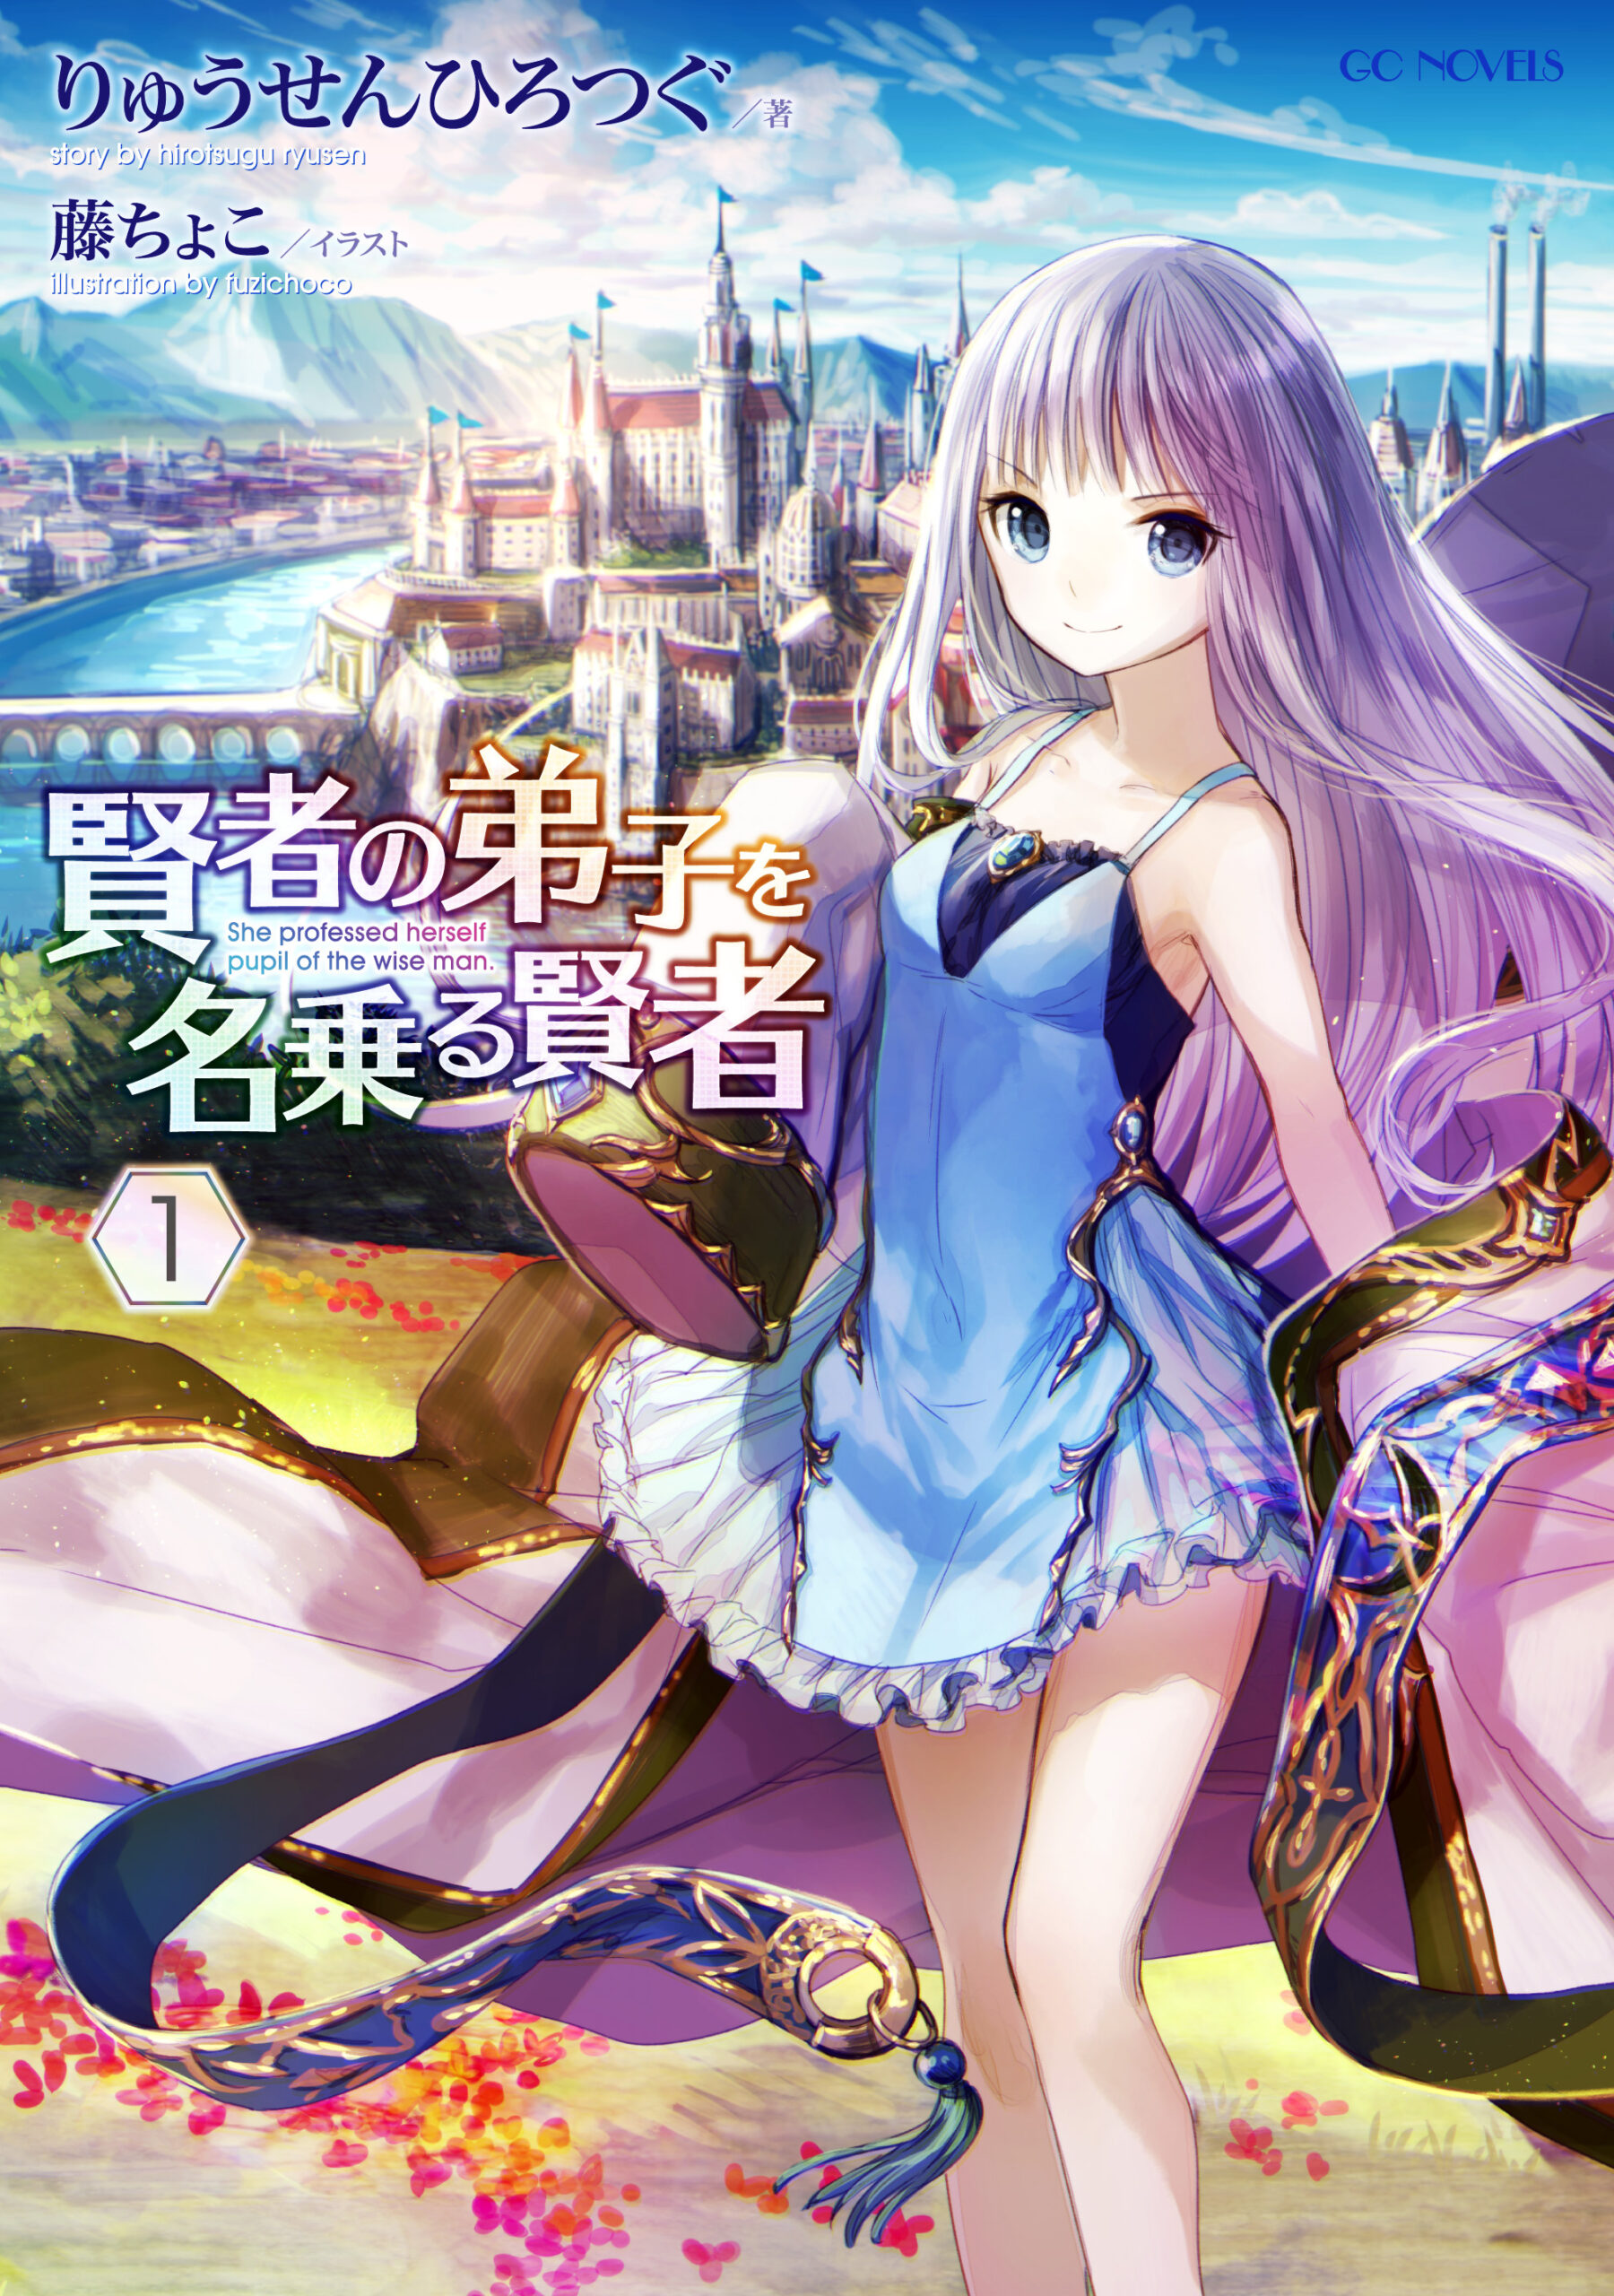 She professed herself pupil of the wise man. MMO isekai romaner laves til TV anime